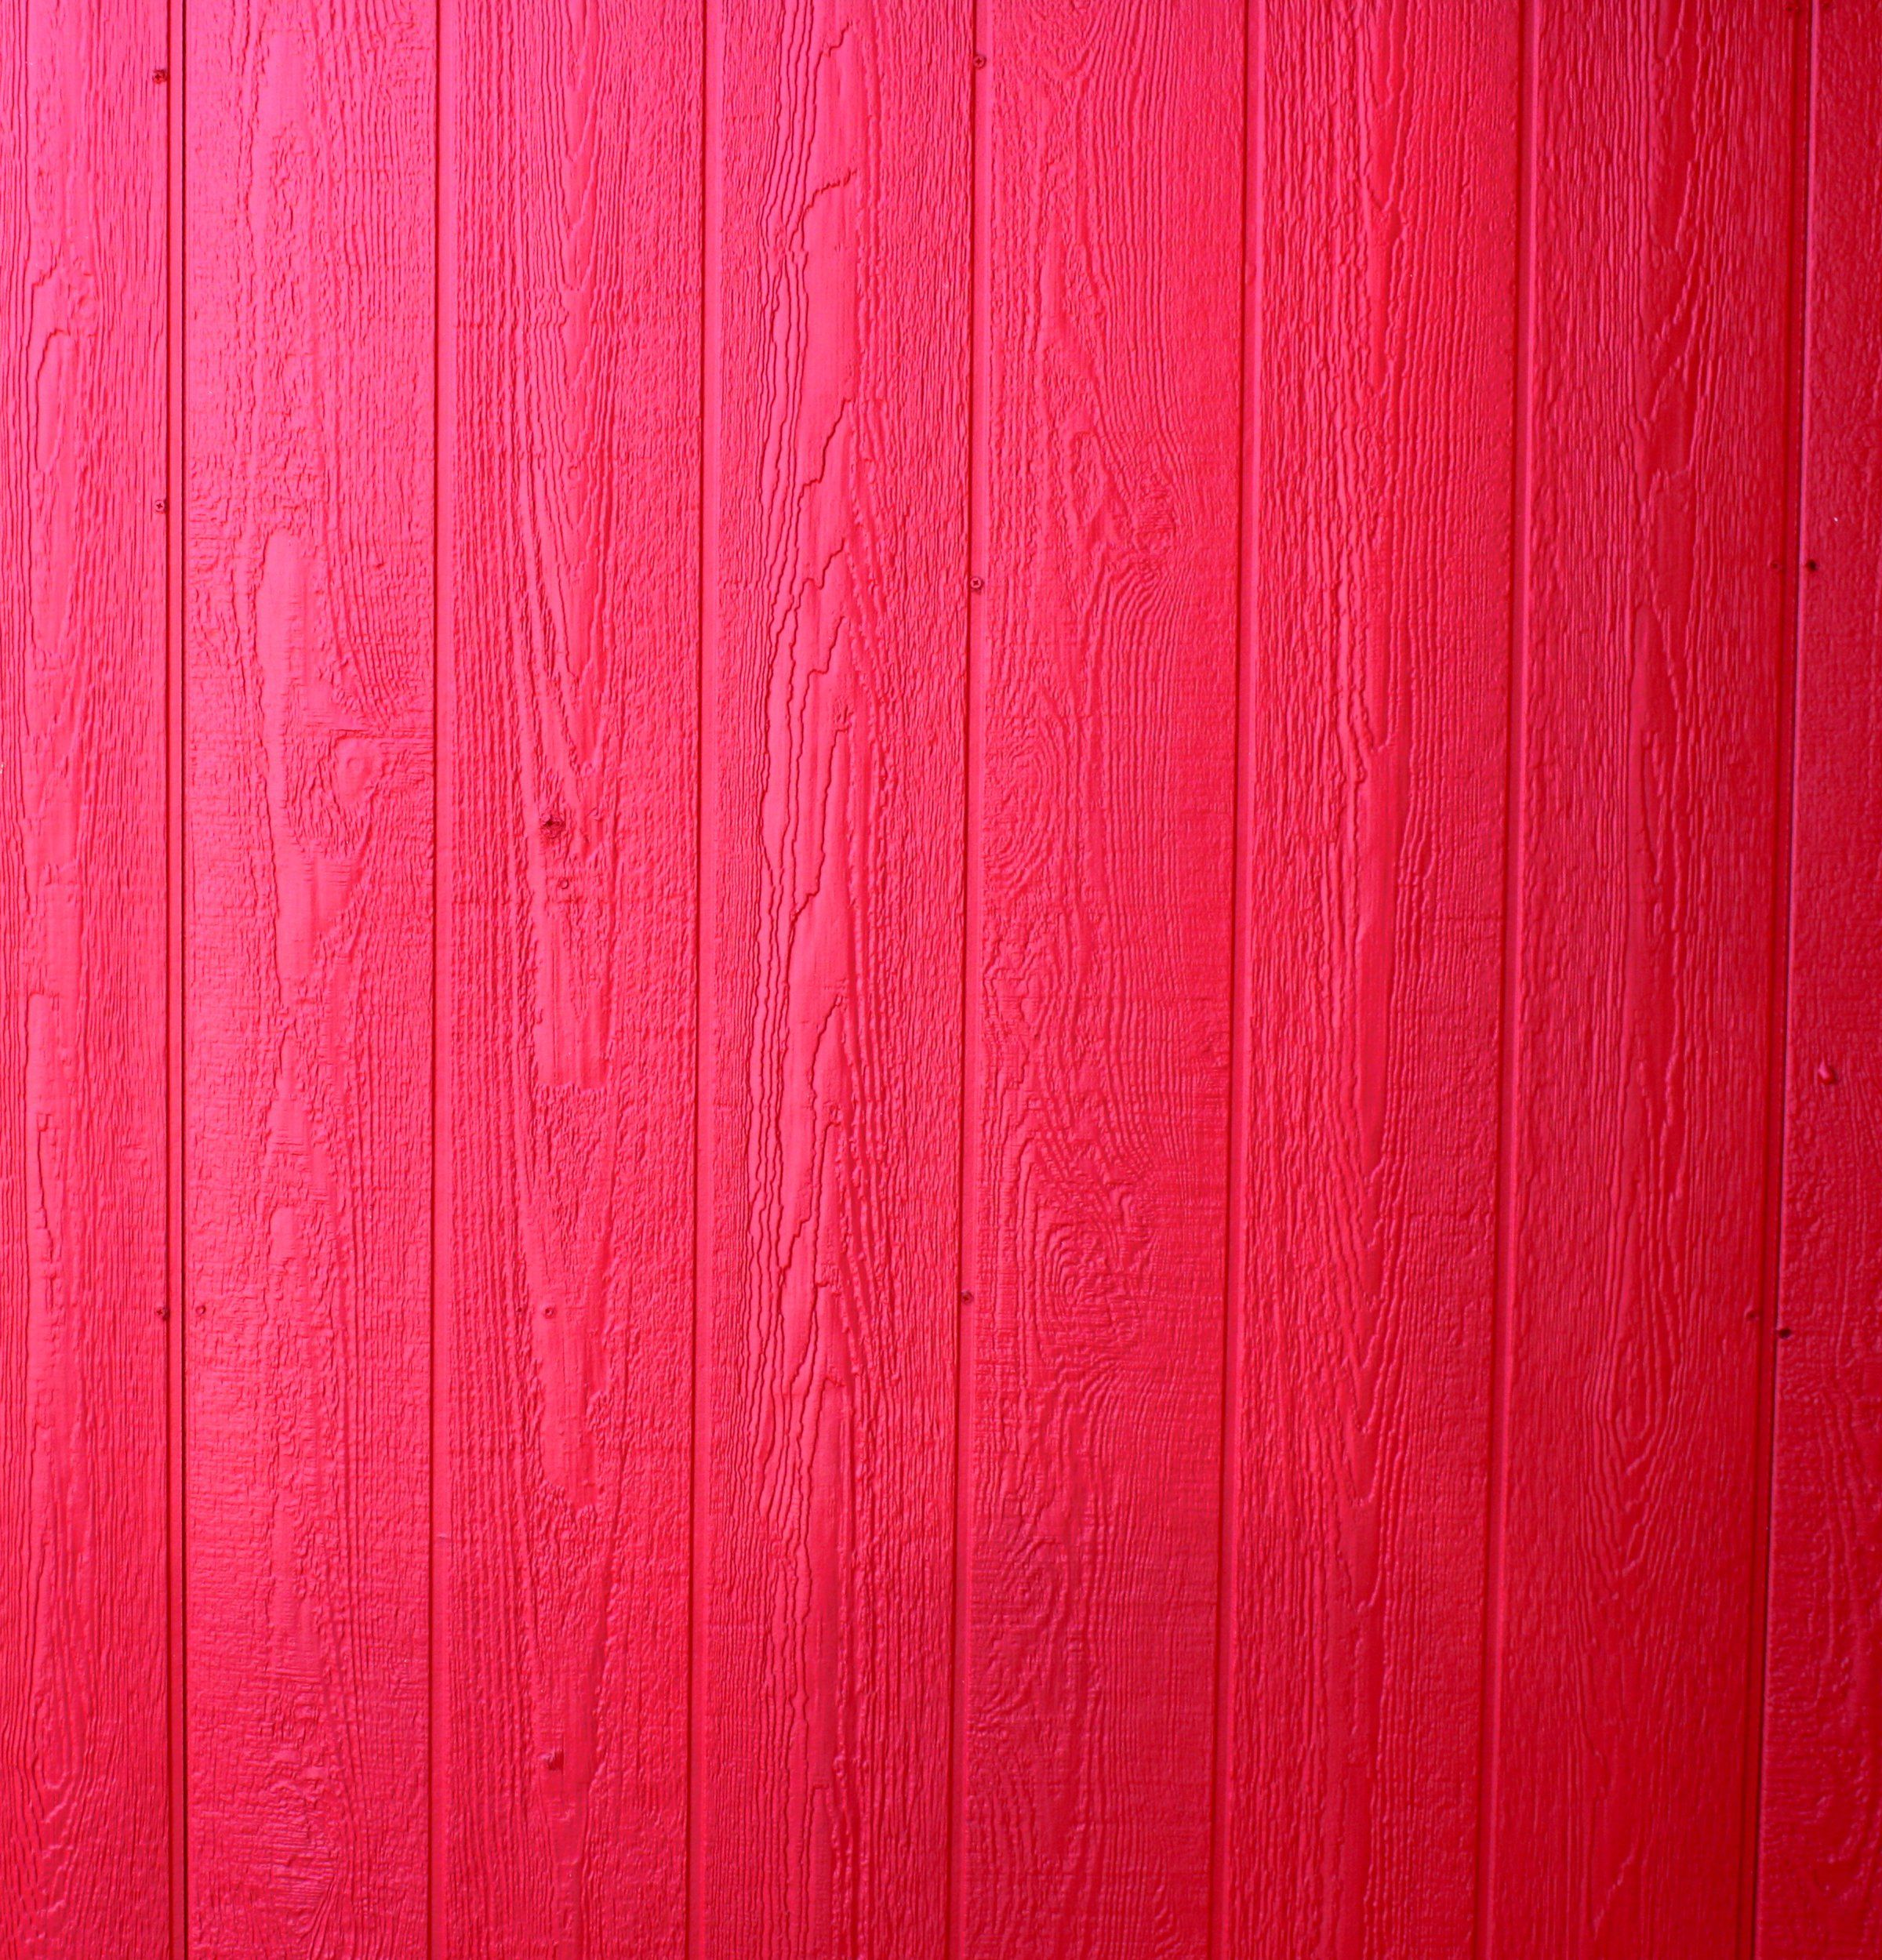 red wall paneling texture | paint | pinterest | red, red walls and